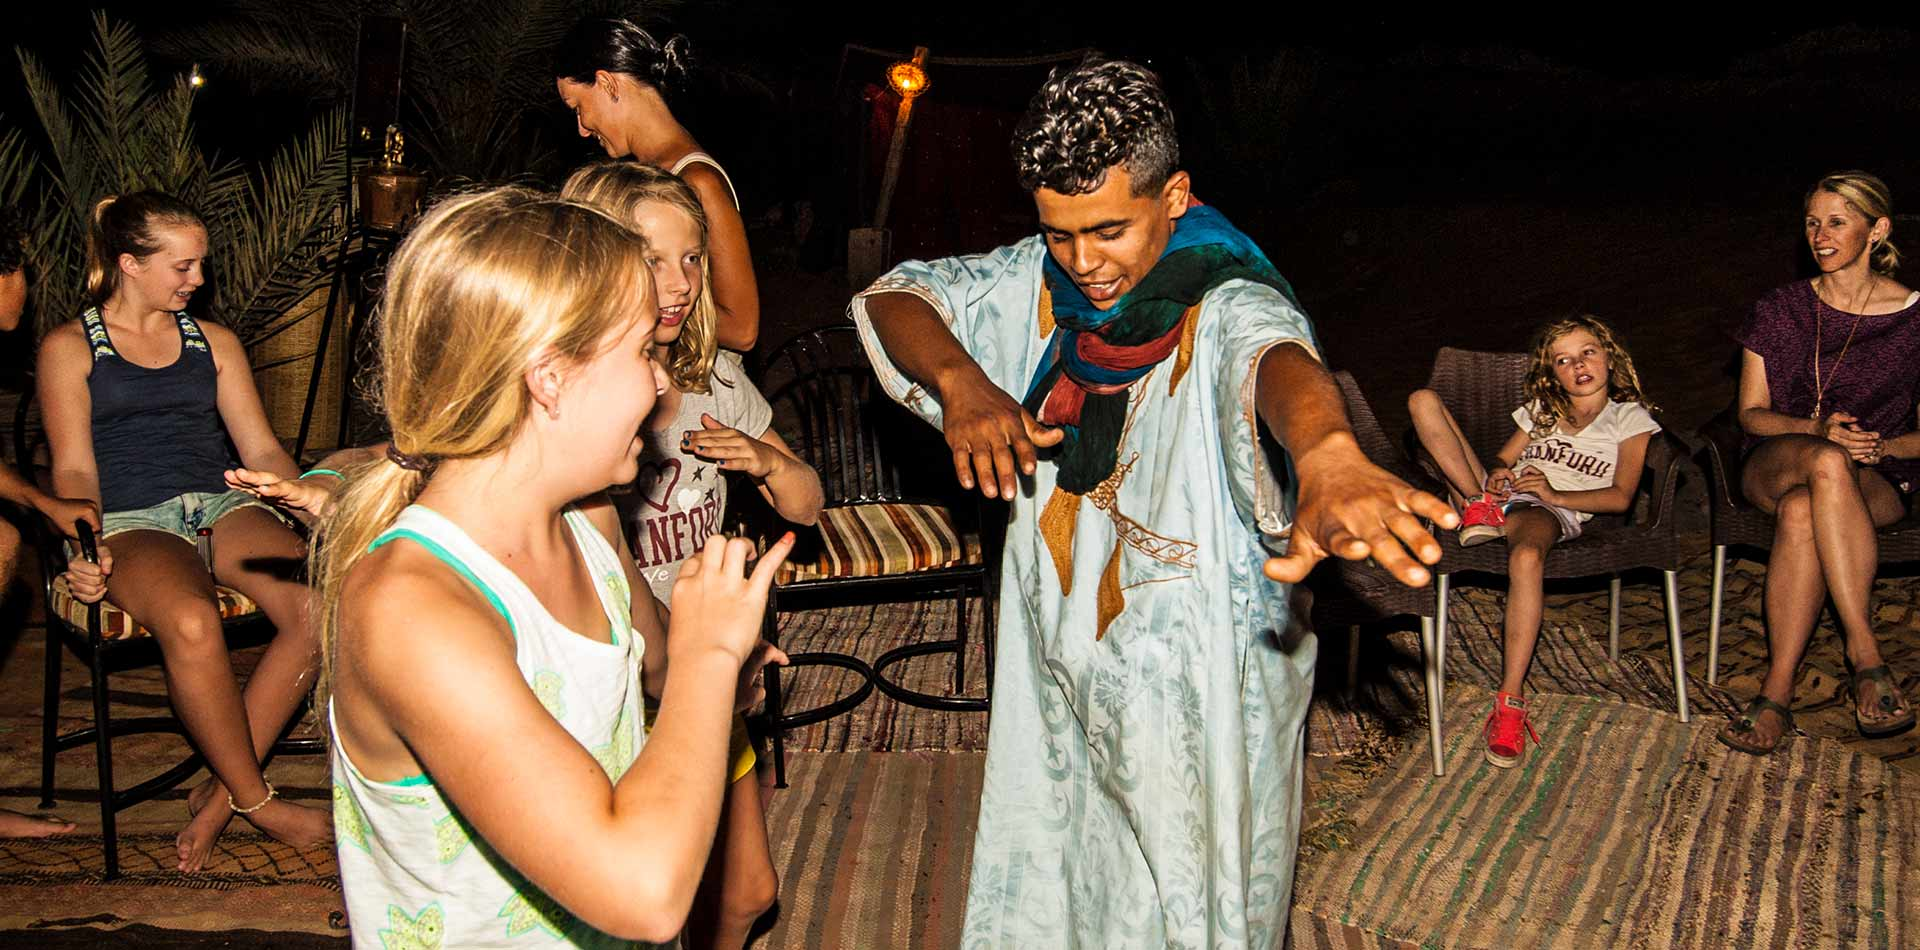 Africa Morocco Sahara Desert Merzouga Berber encampment kid's dancing with local Blue Man - luxury vacation destinations